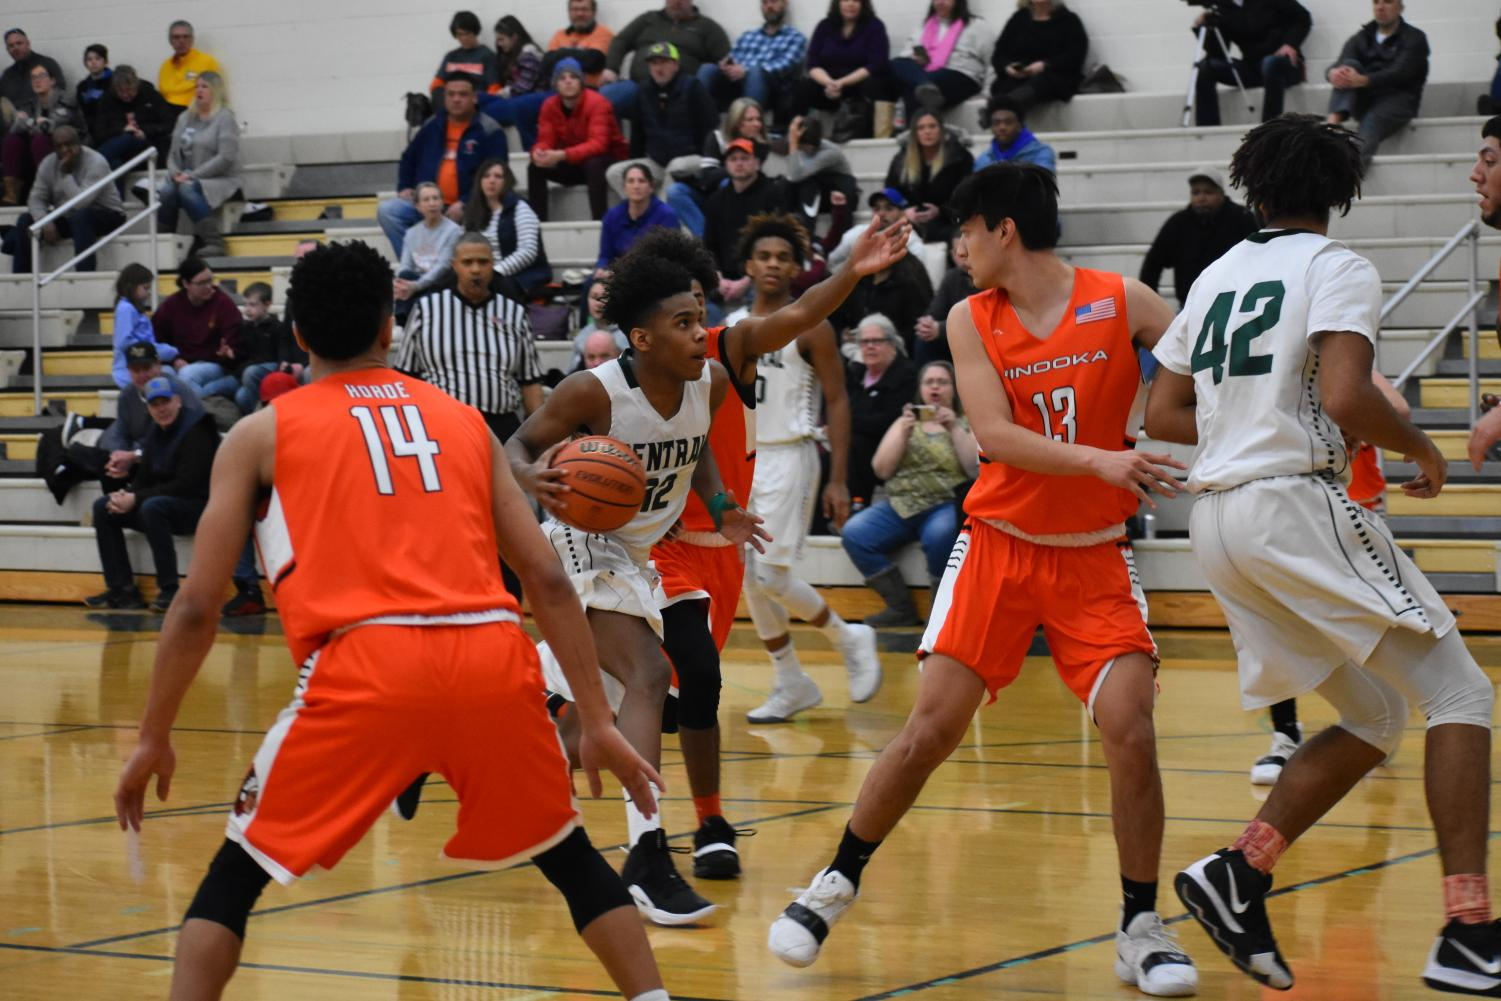 Junior Tavari Johnson drives to the basket through Minooka's defense. The Wildcats won 58-56.